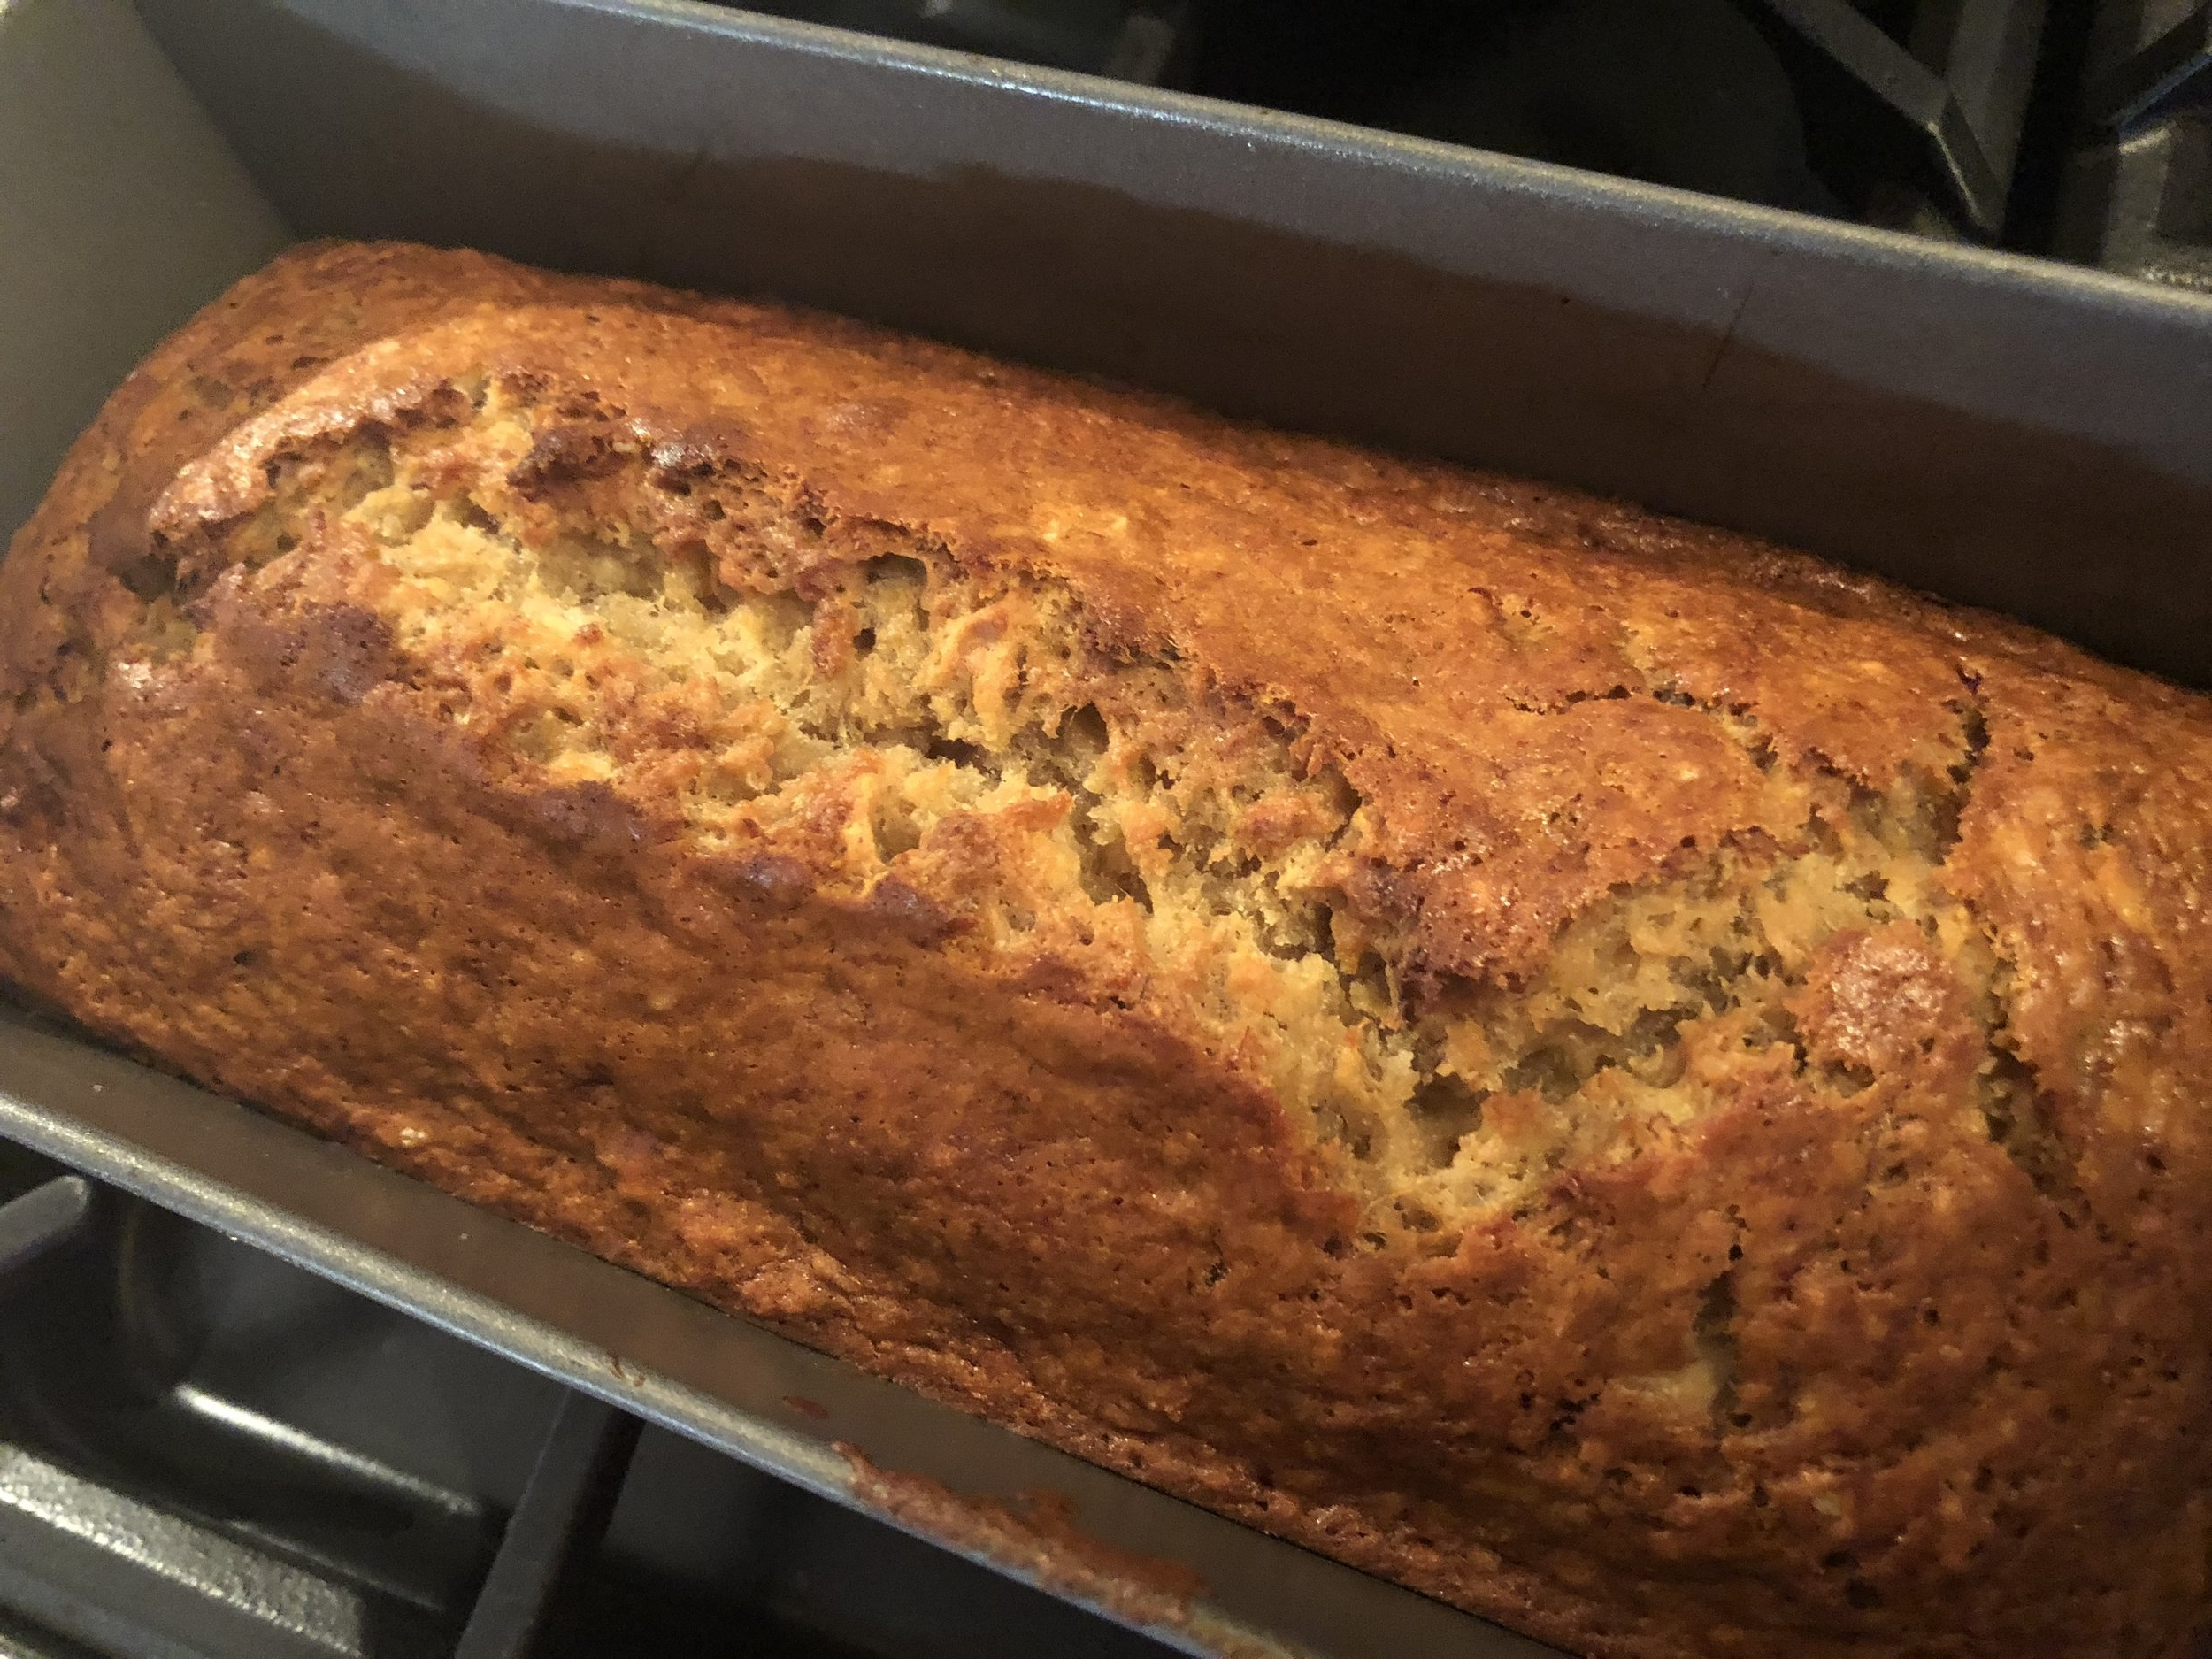 Banana bread, fresh from the oven